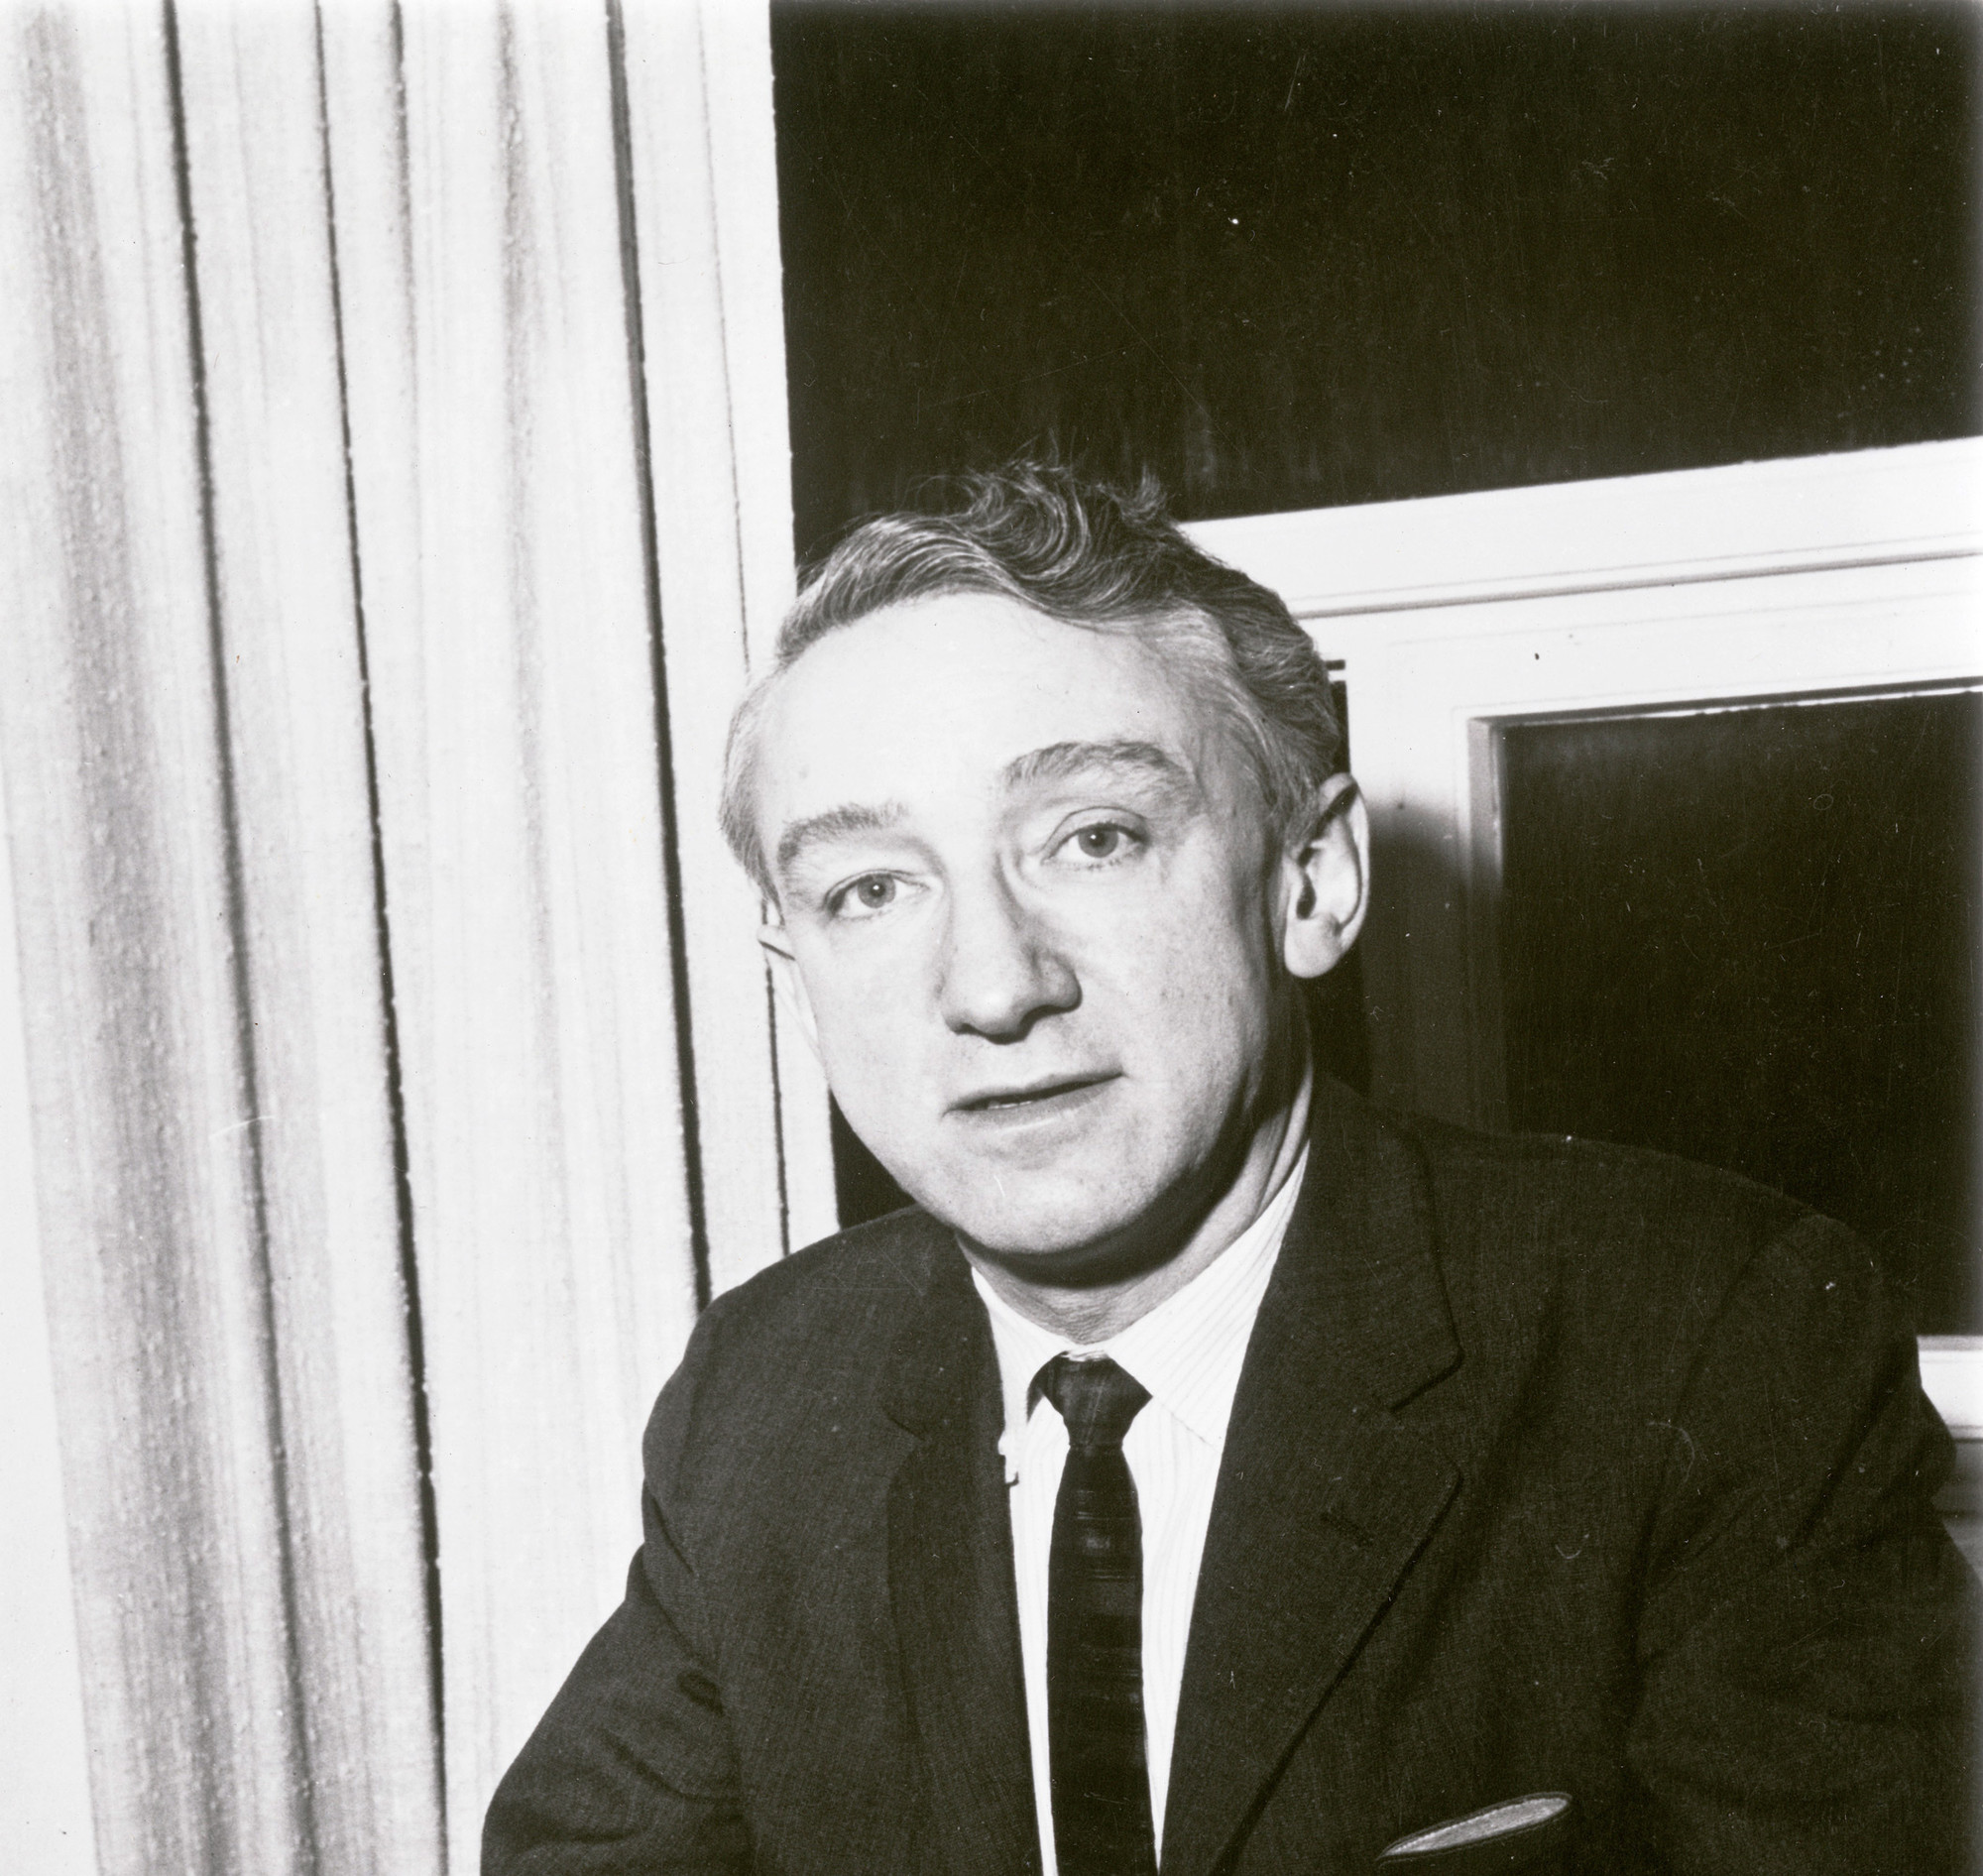 William C. Seitz, May 1964